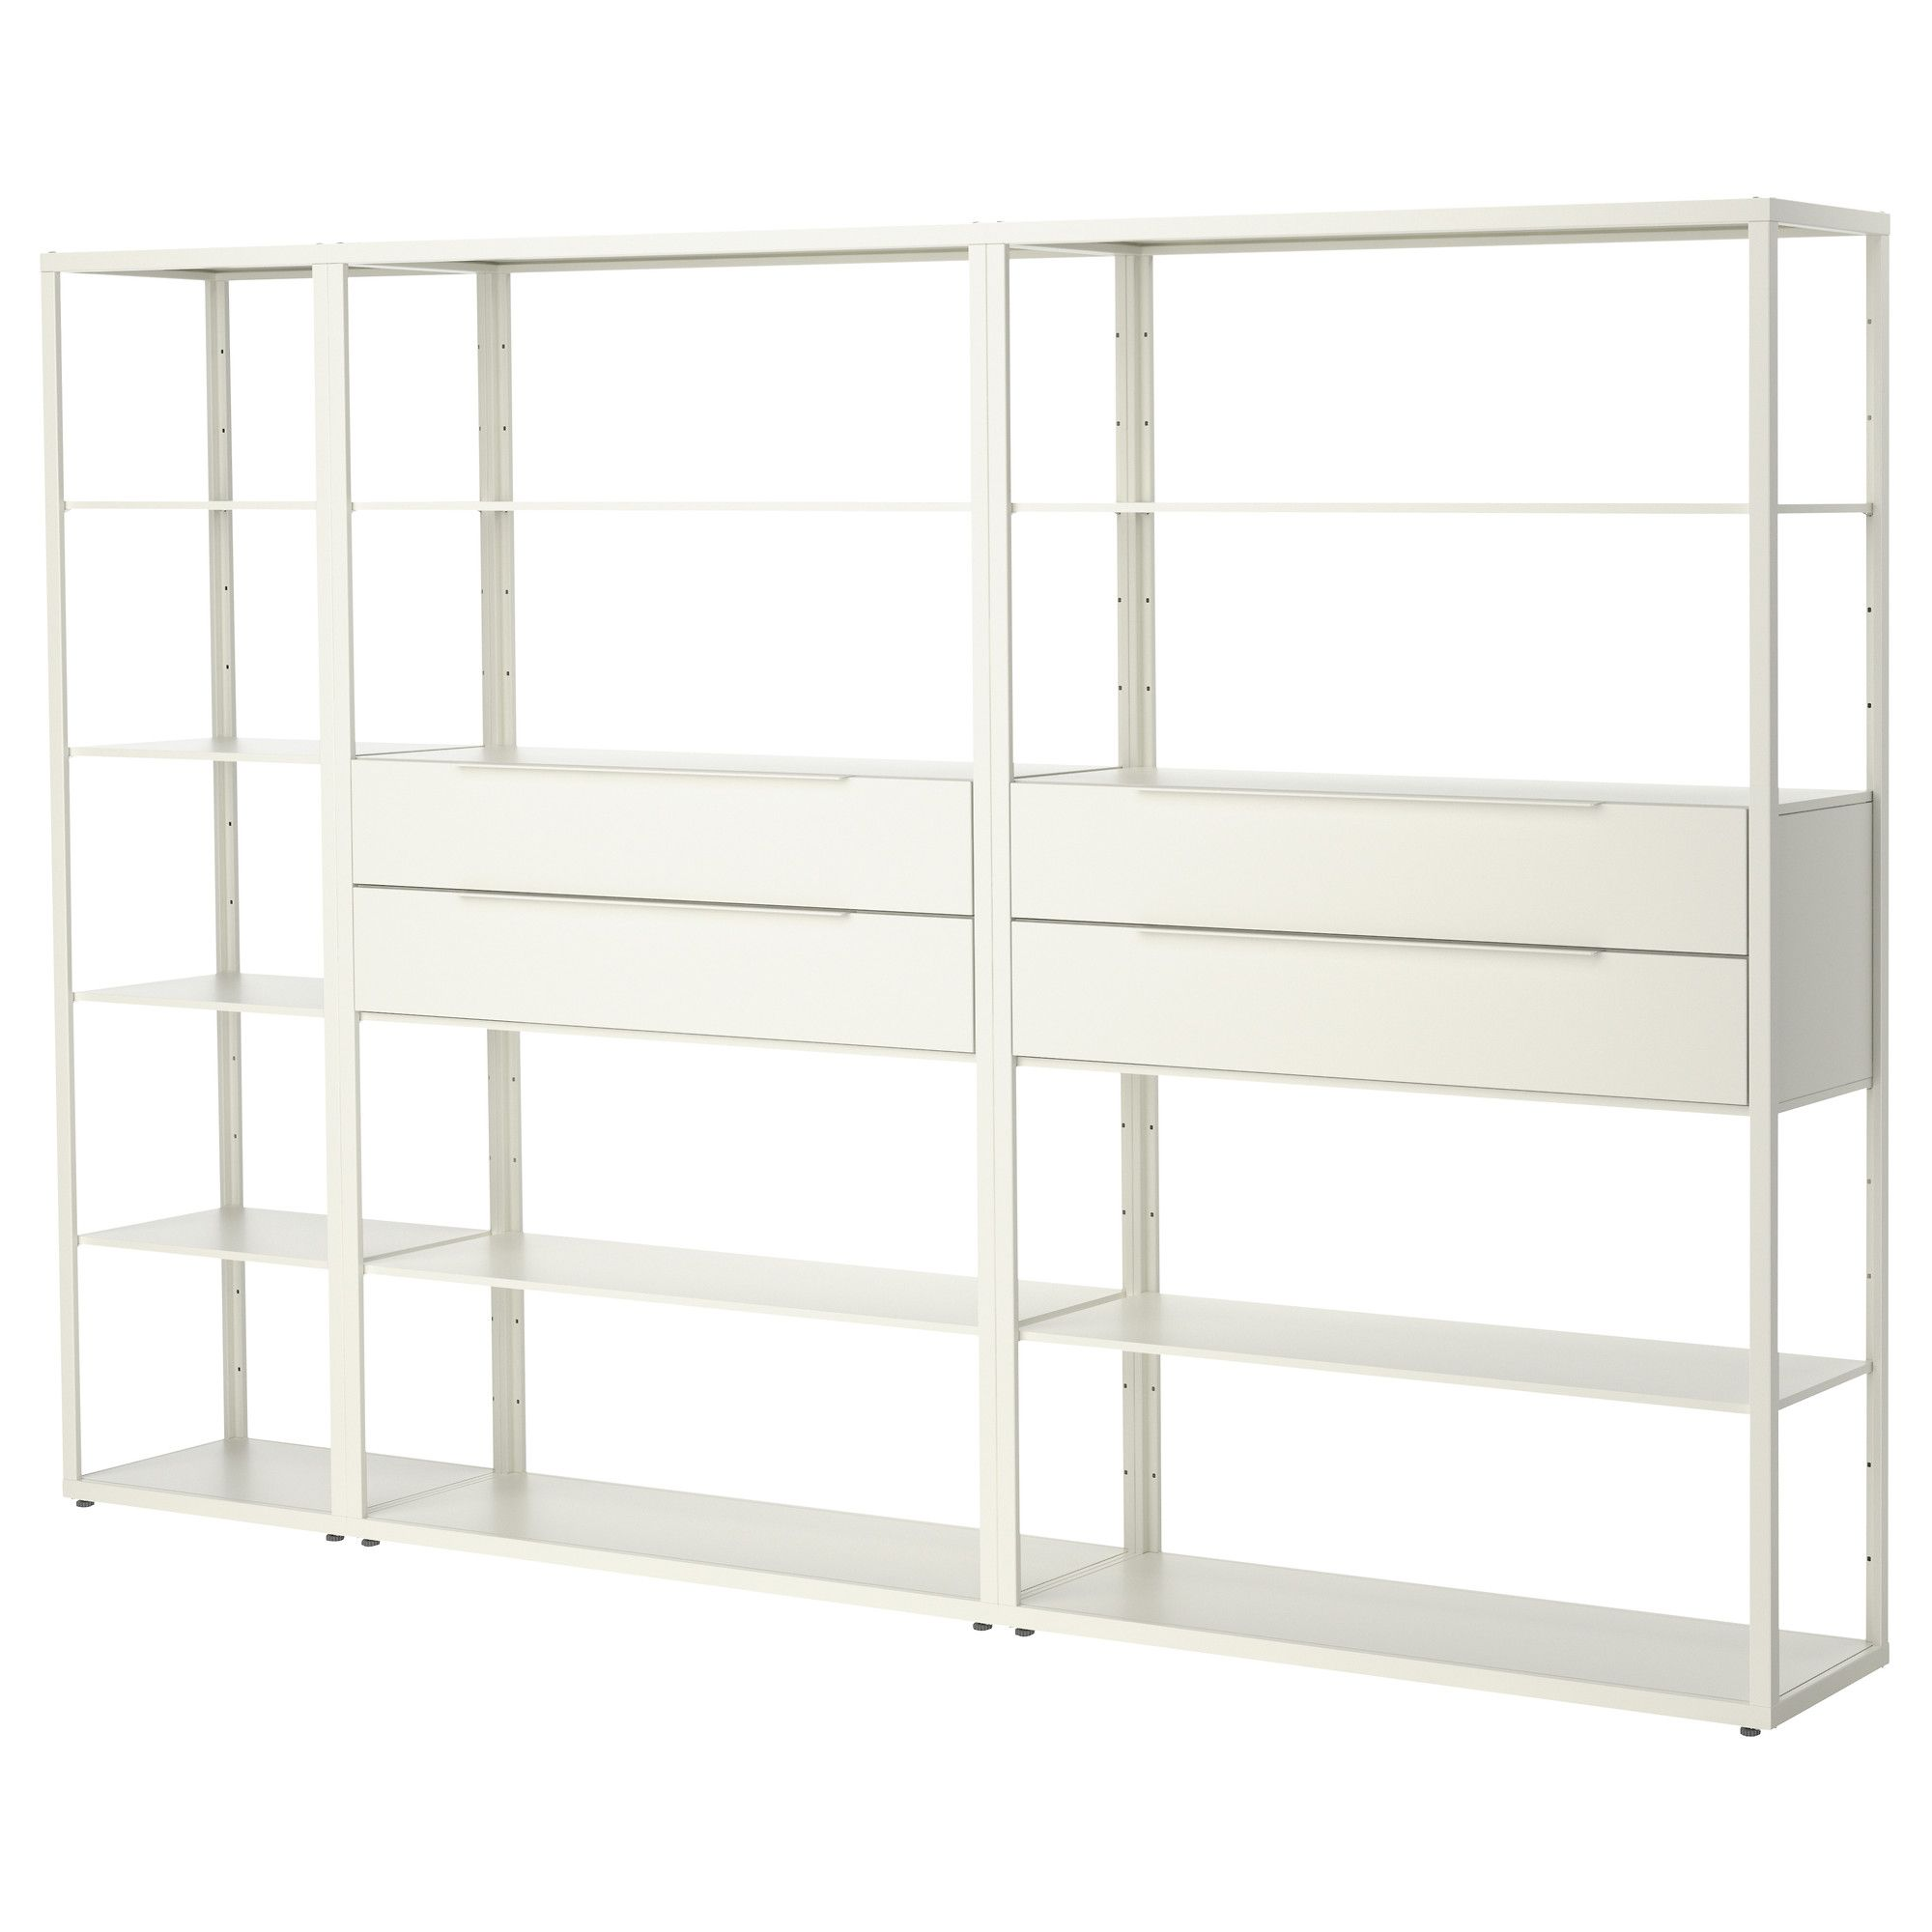 Fj Lkinge Shelving Unit With Drawers  Ikea